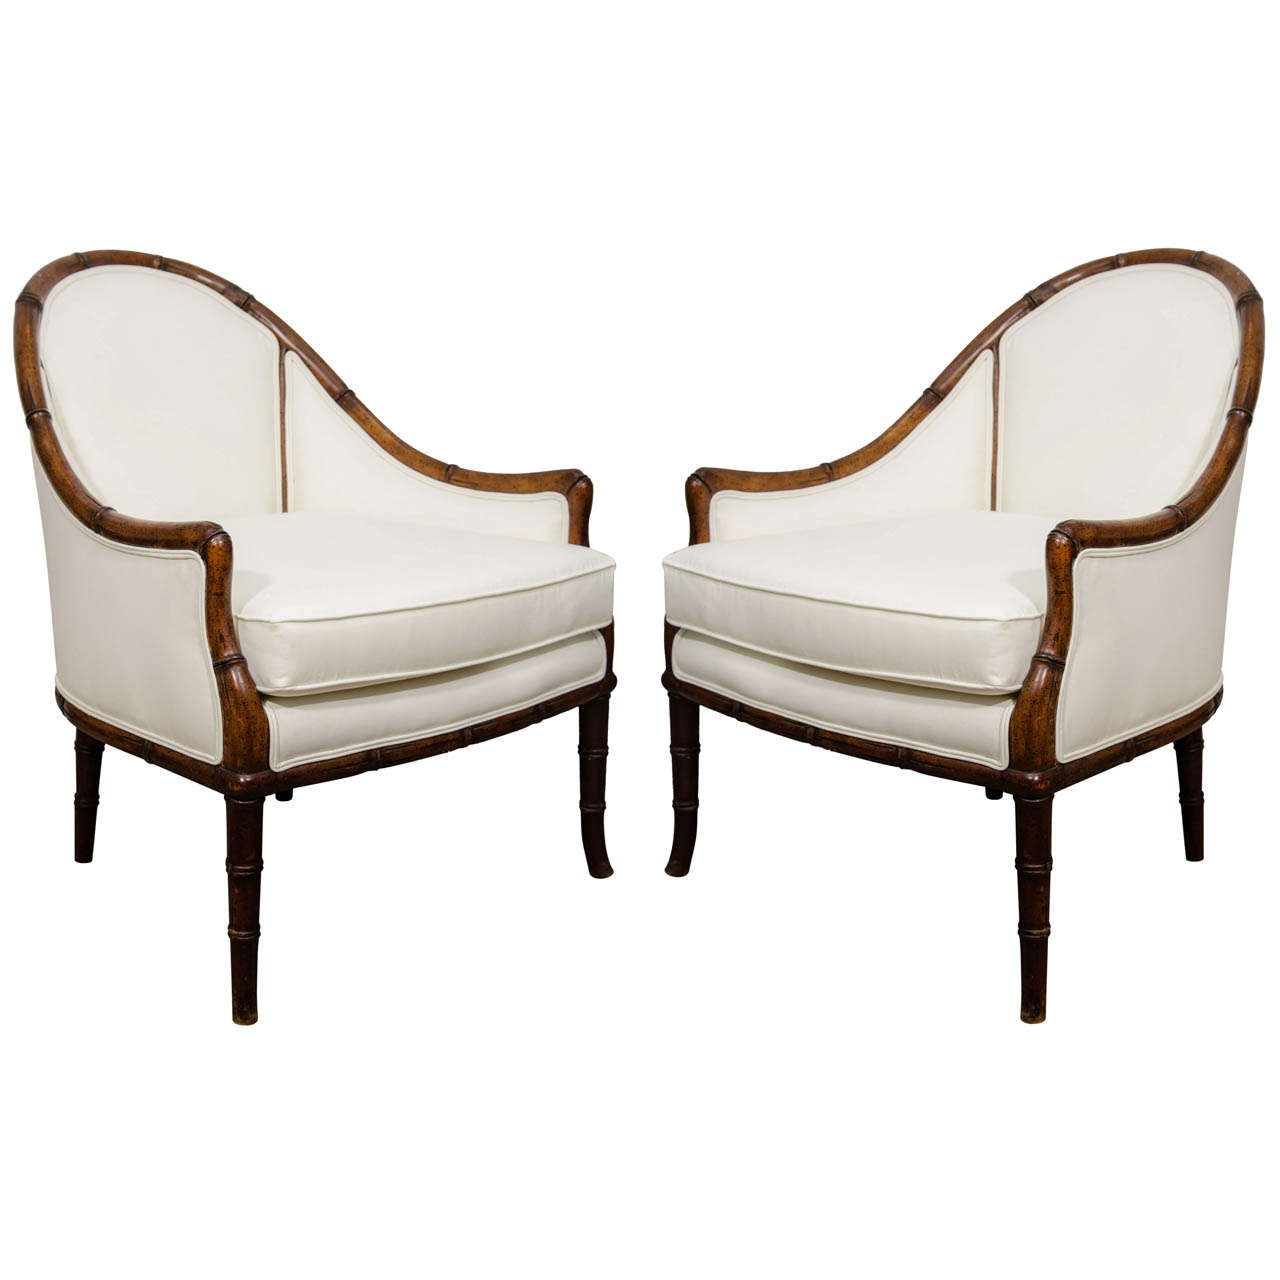 Bamboo arm chairs - A Pair Of Vintage Faux Bamboo Arm Chairs 1